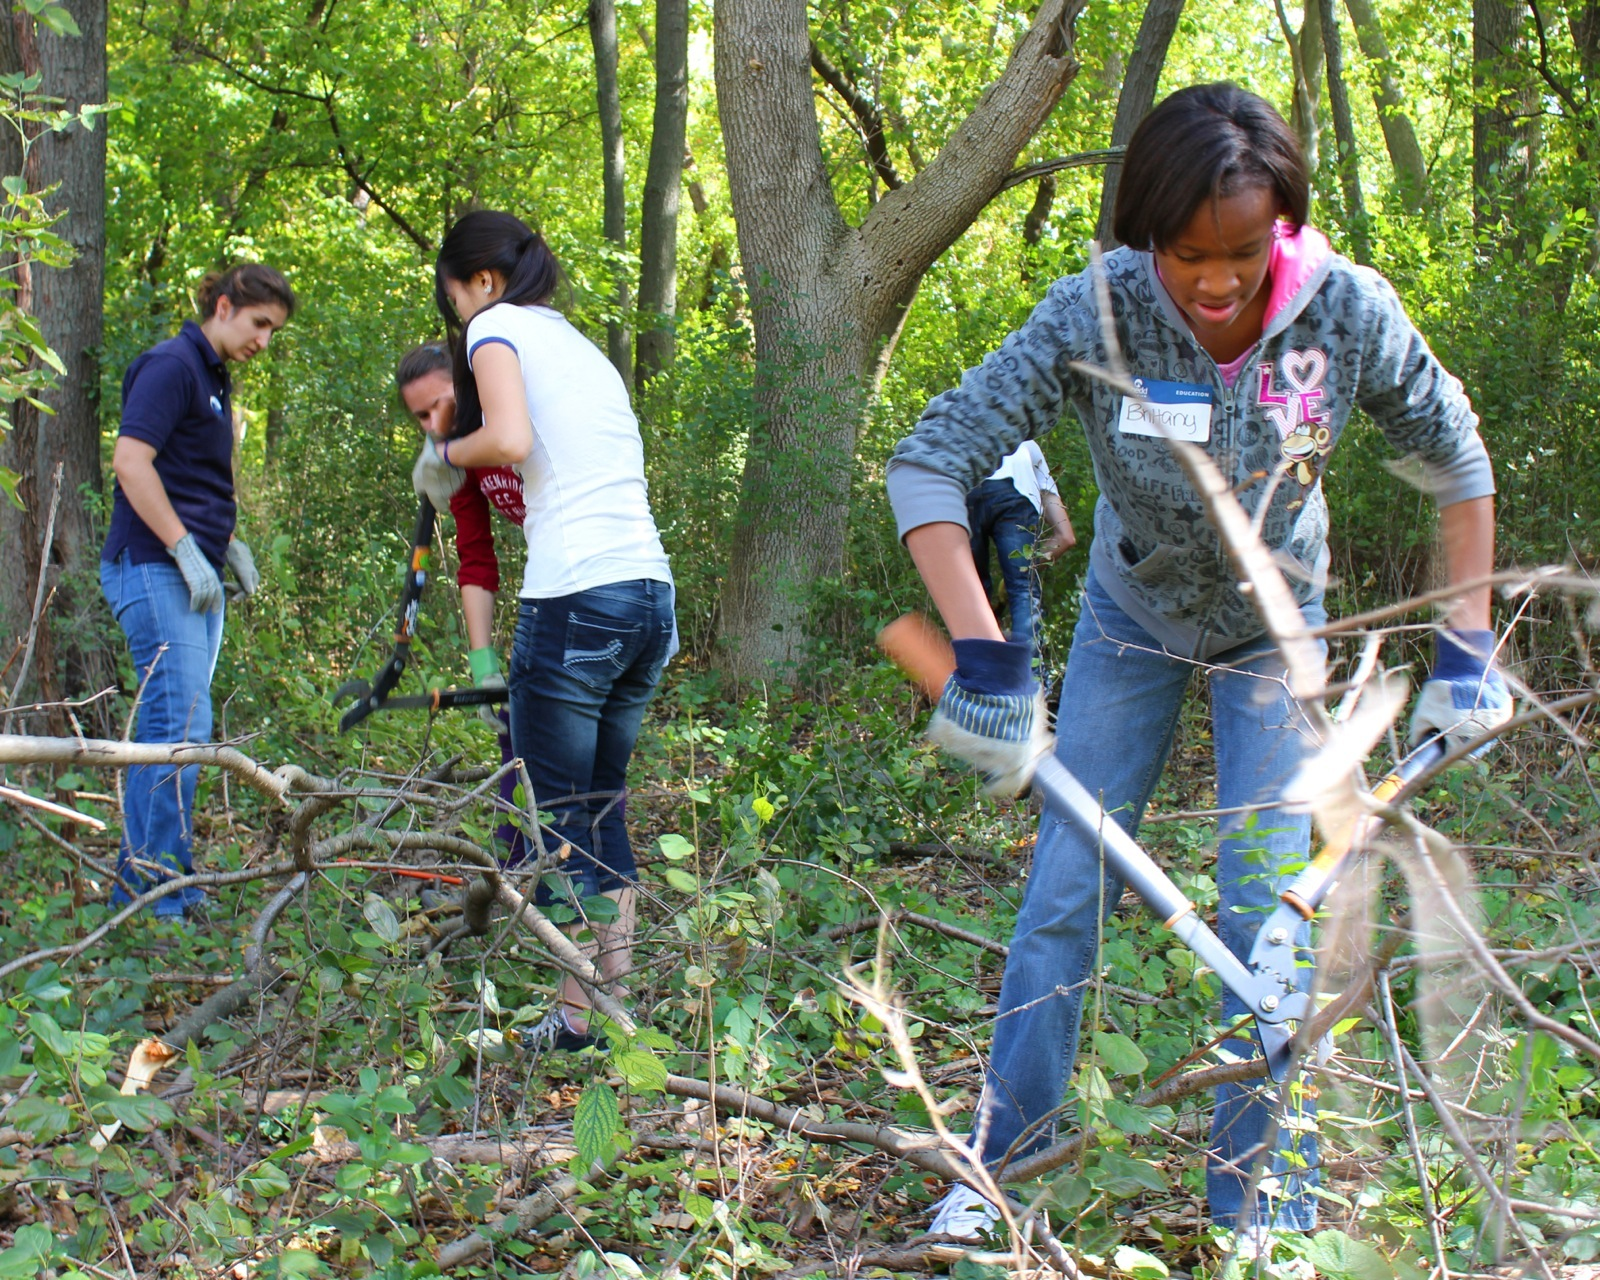 a group of 5 students use garden tools to remove invasive plant species